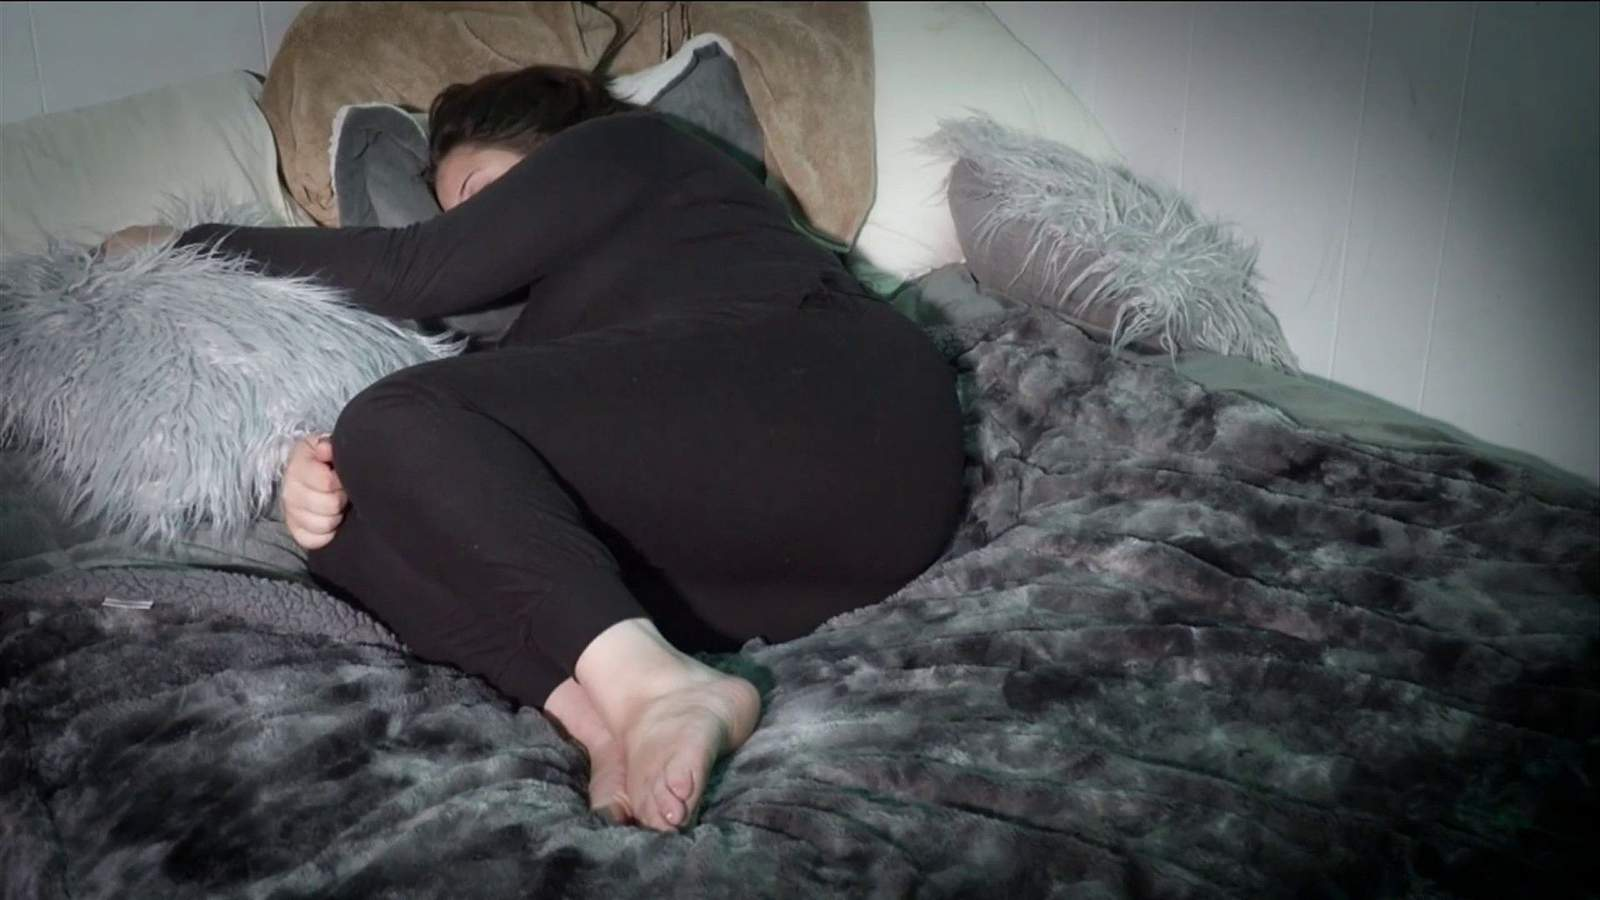 Here is how yor sleep position could be affecting your health